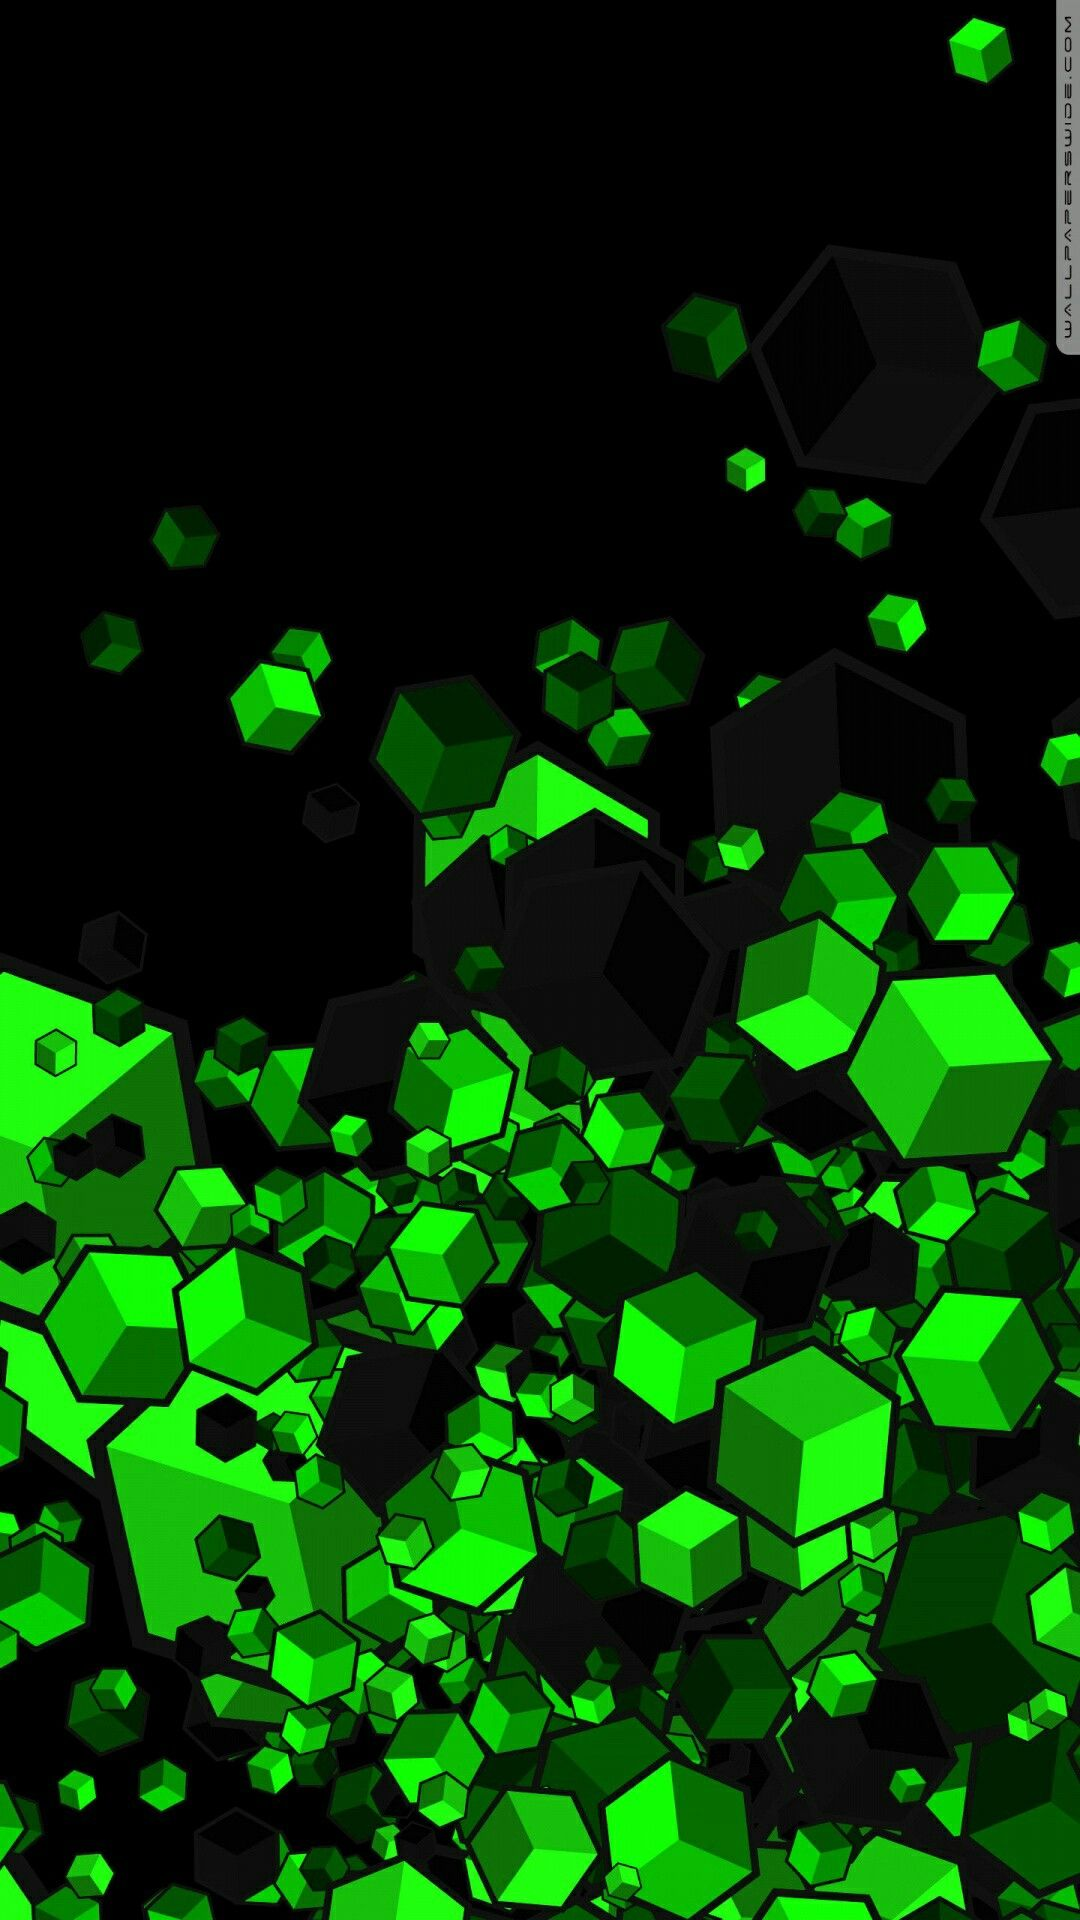 Abstract wallpaper by Lynn Hays on G R E E N | Background ...